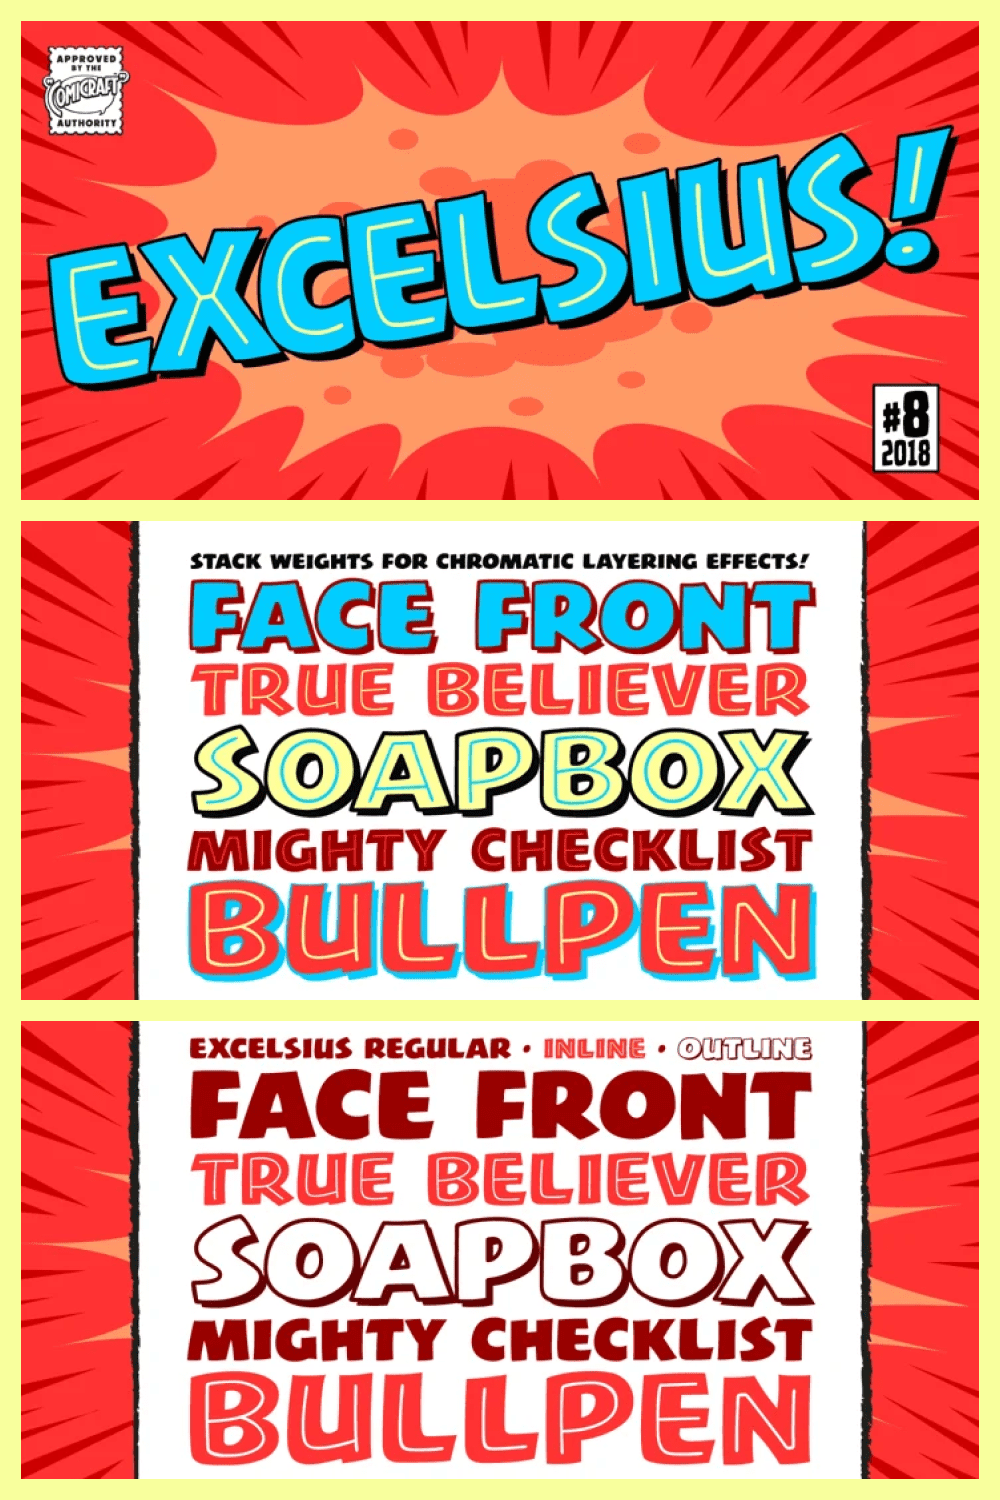 Vivid font is perfect for comics about superhero.